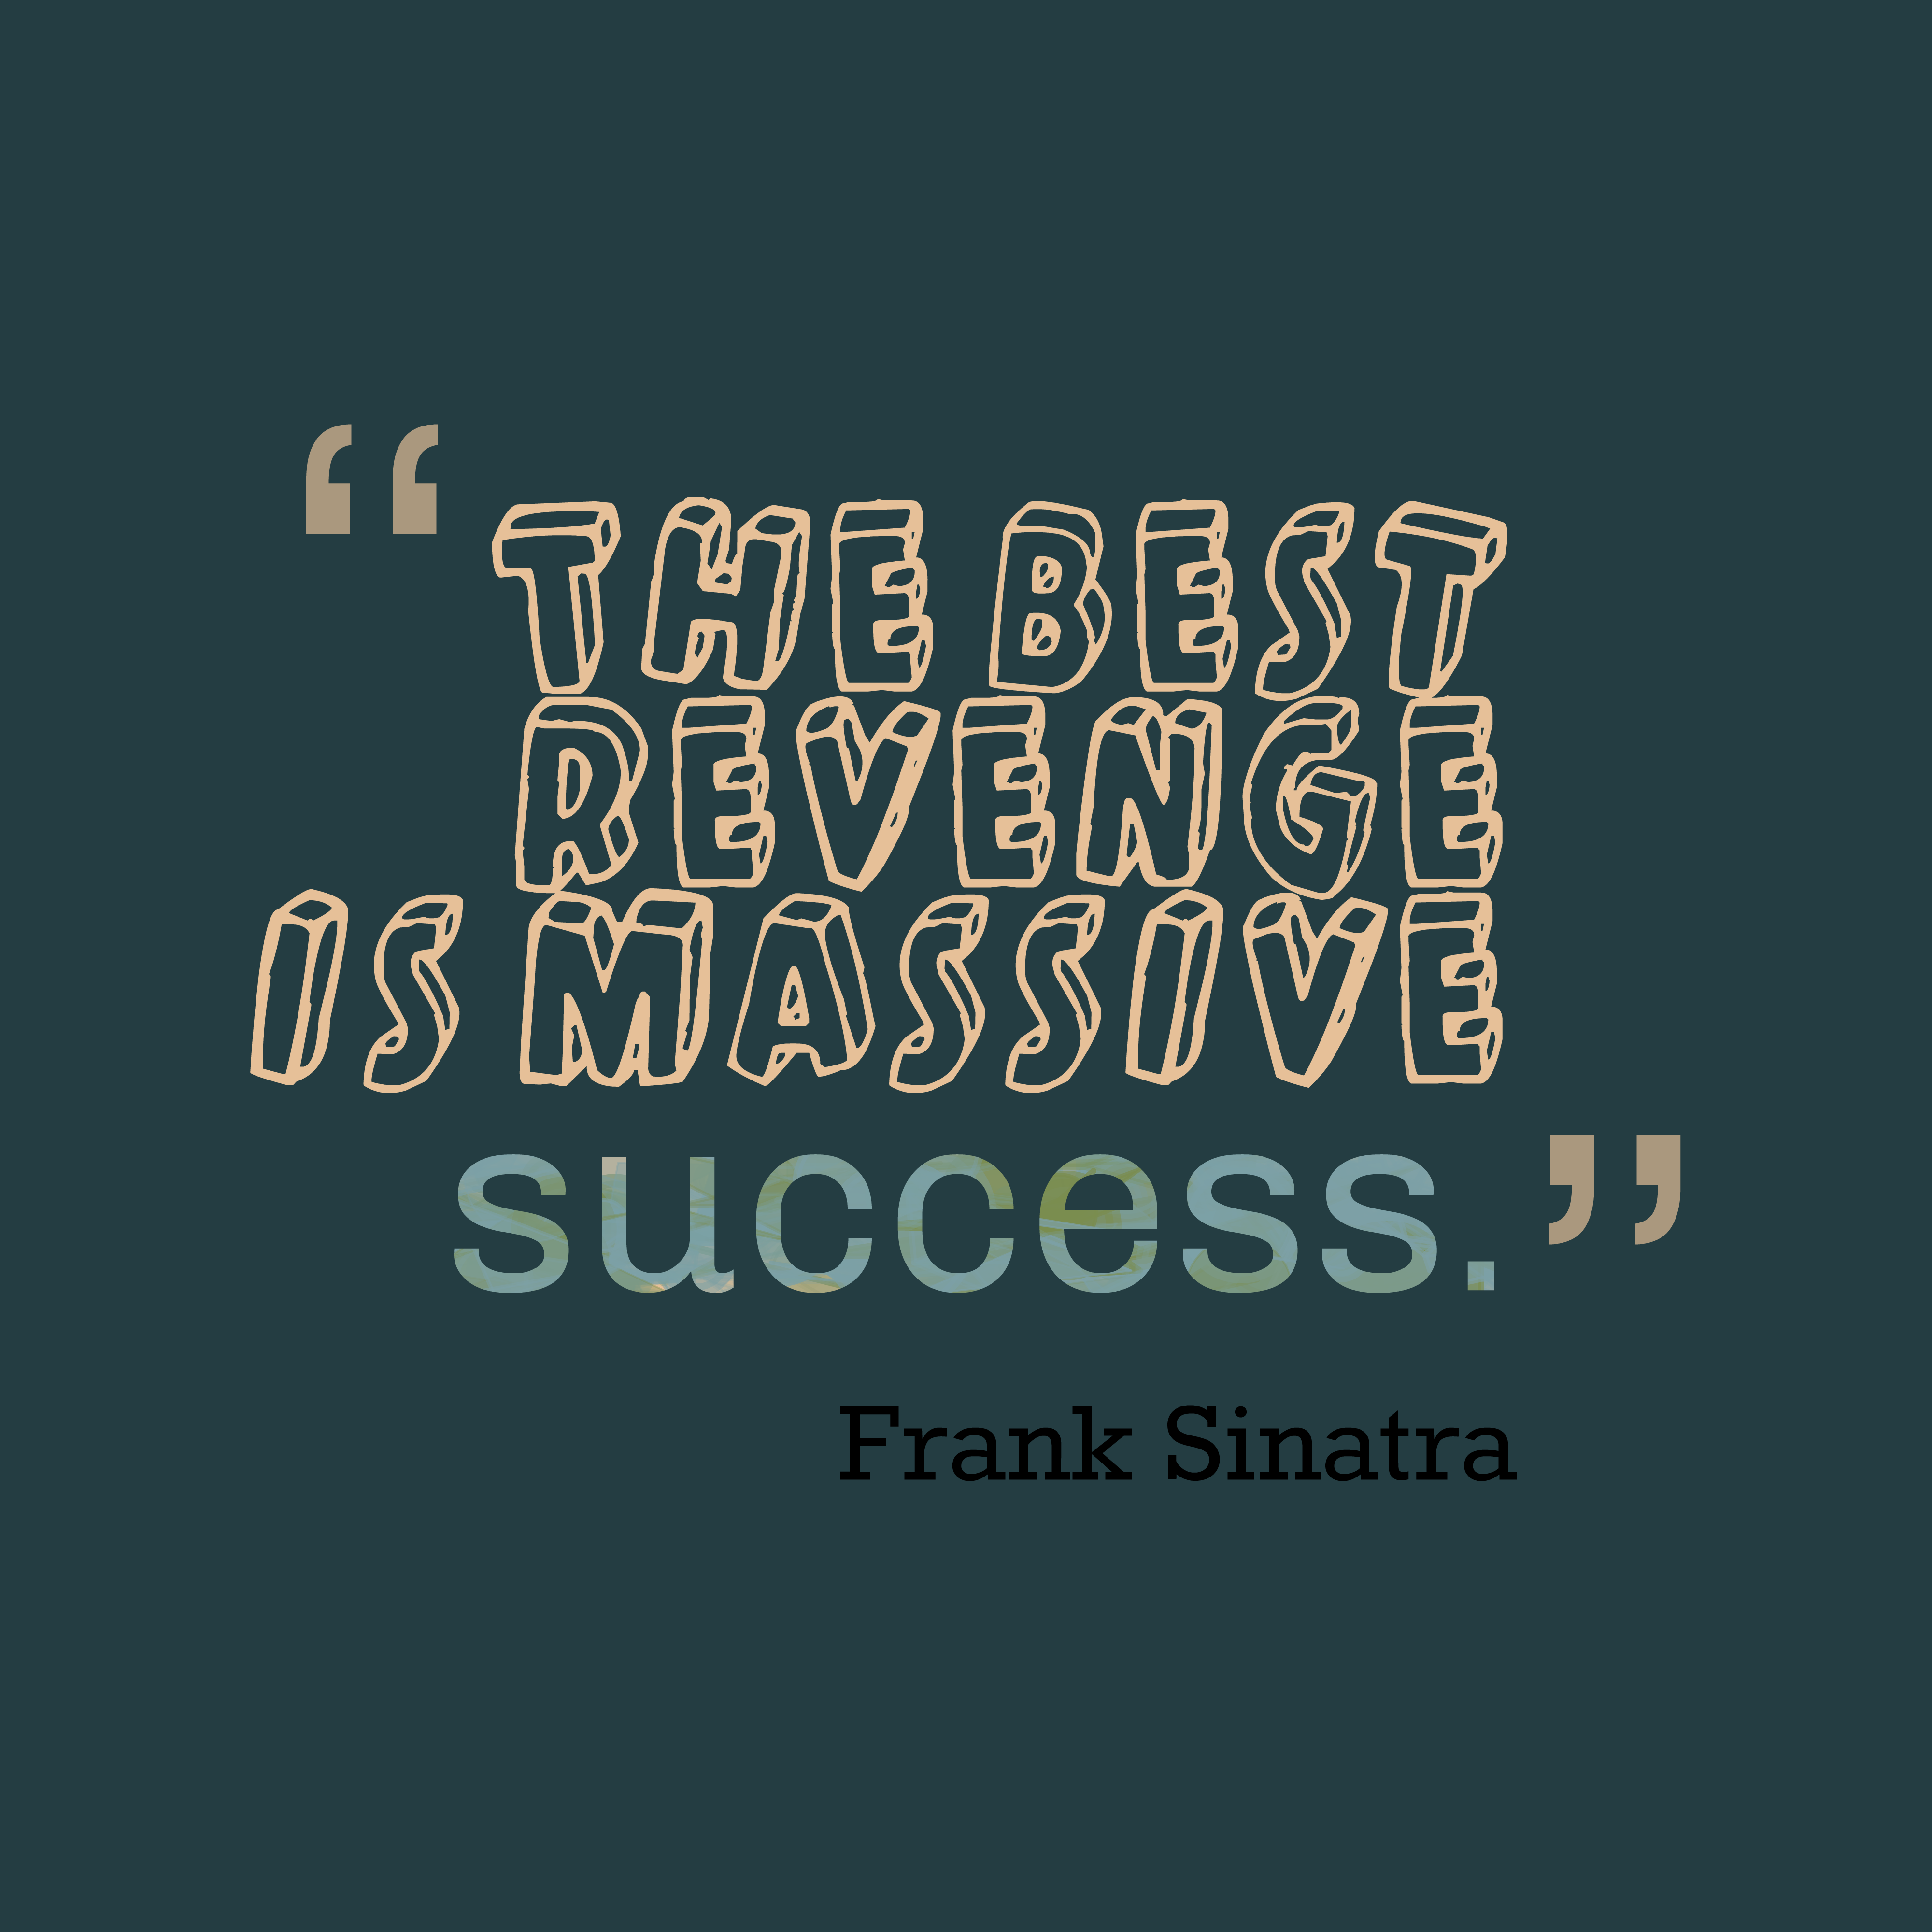 Frank Sinatra Quote About Revenge